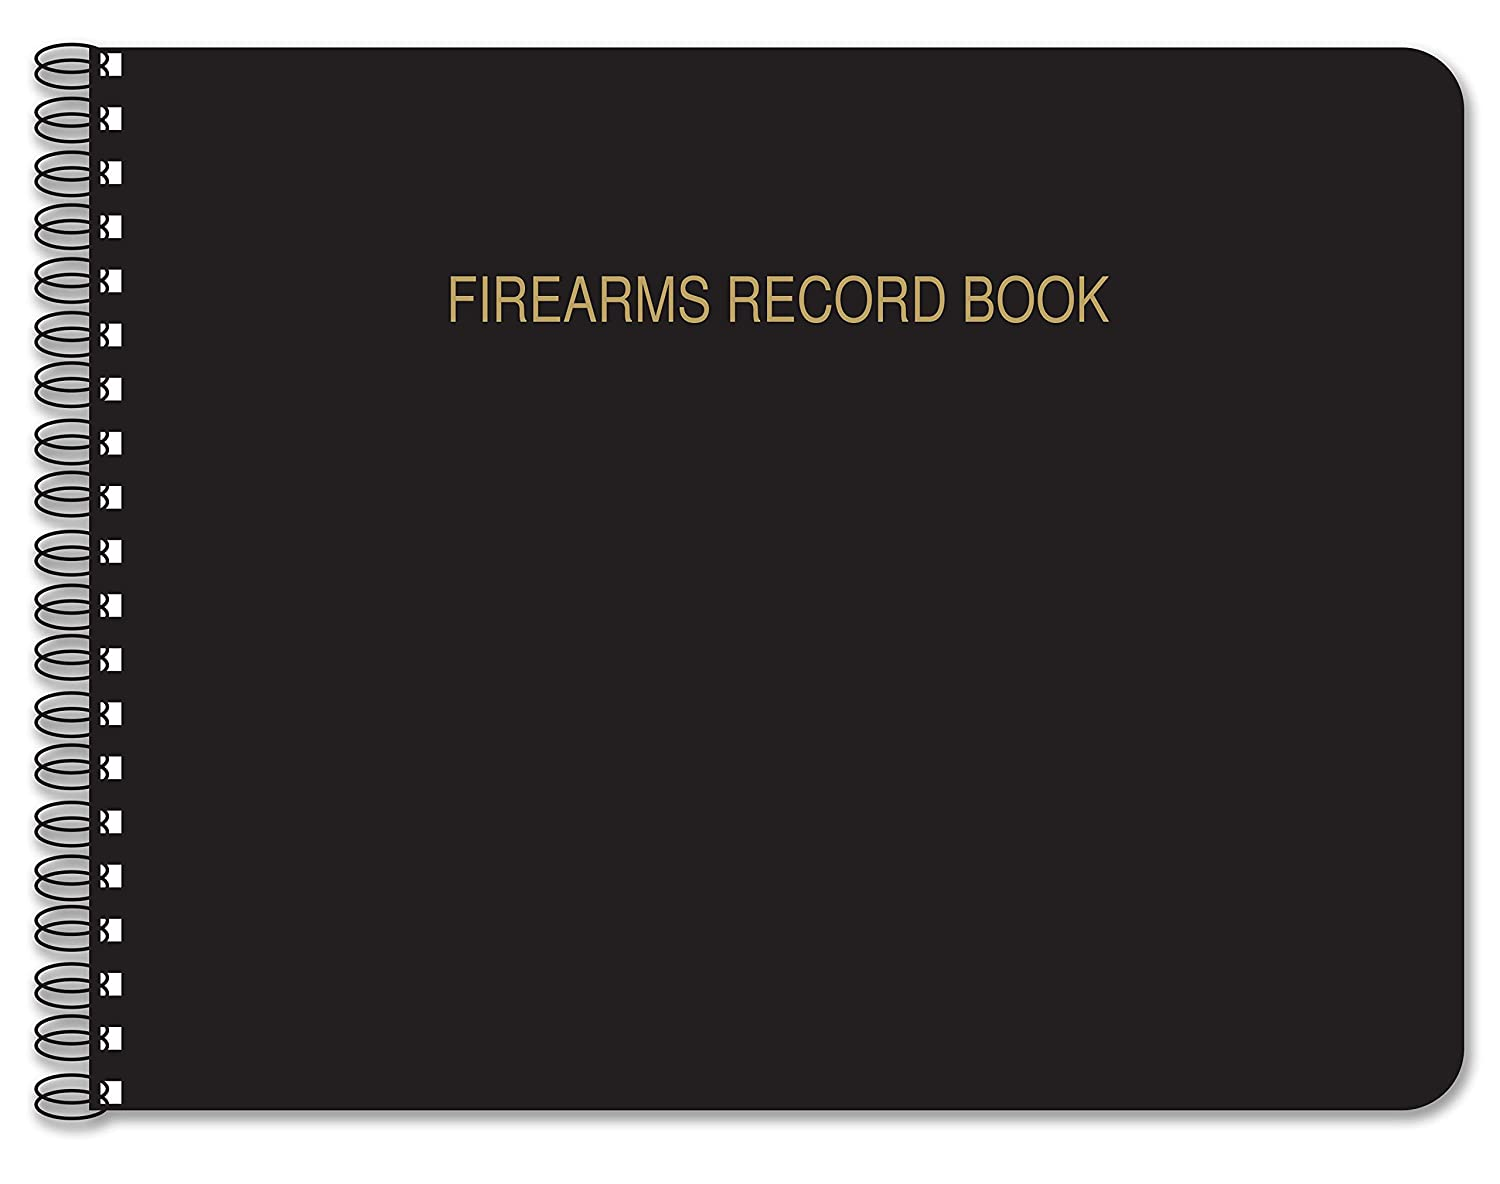 "BookFactory Firearms Record Book/Gun Log Book - 100 Pages, Black TransLux Cover - Wire-O, 11"" x 8 1/2"" (LOG-100-GUN-W01-FRB-T52)"